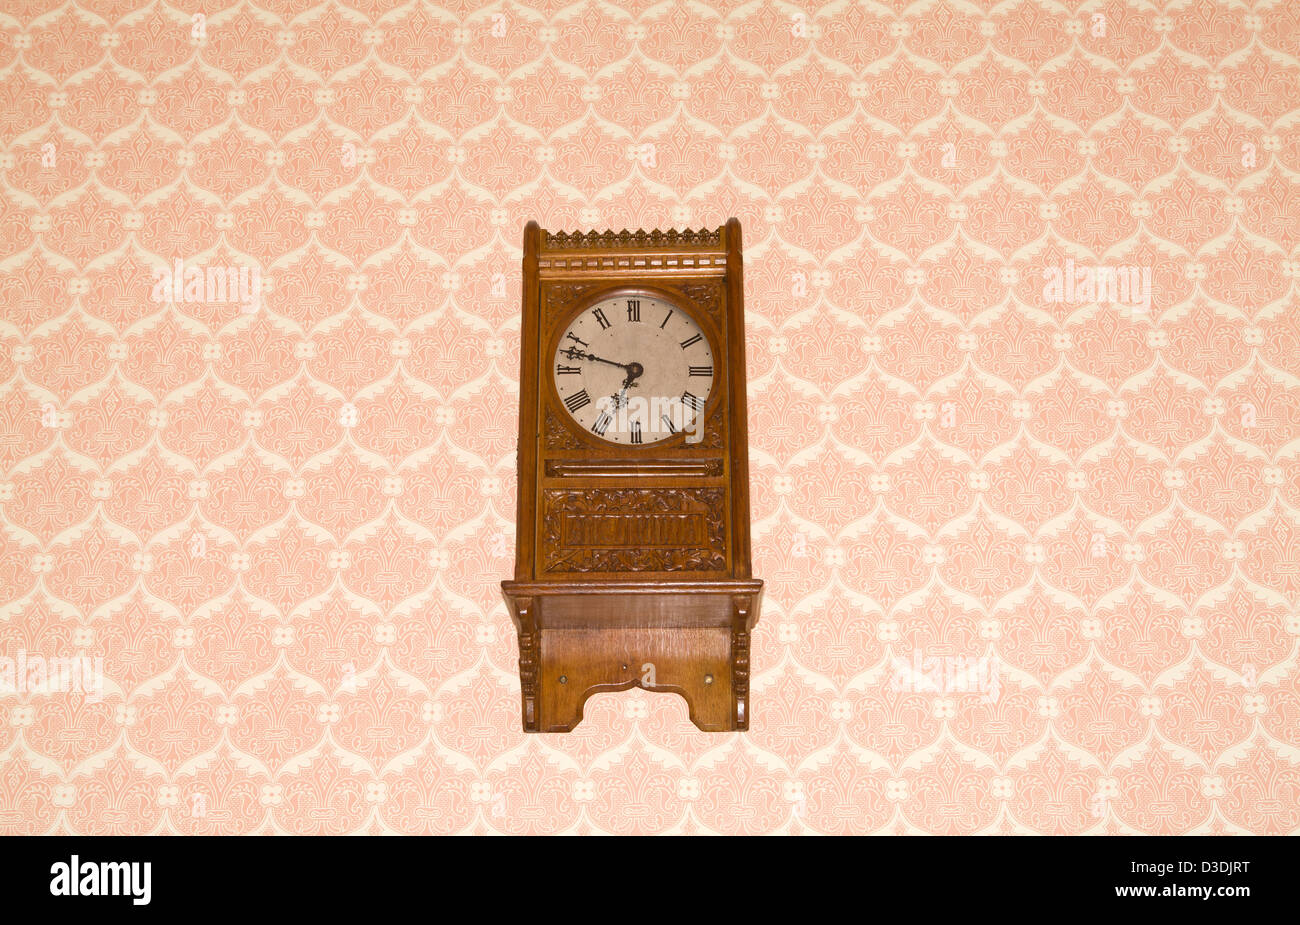 Wall clock on a wall with a designer wall paper - Stock Image